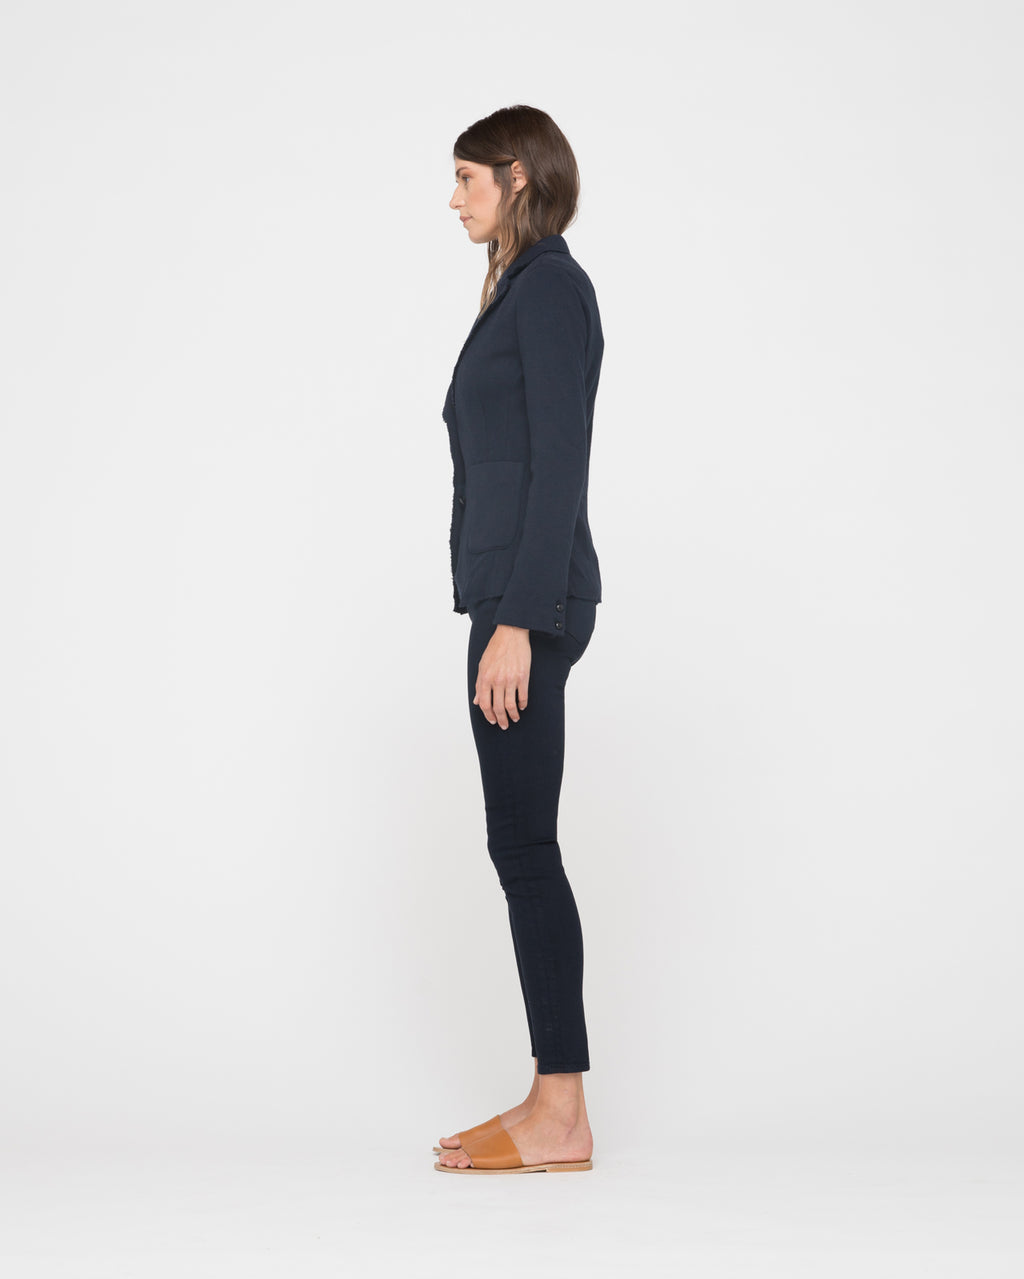 The Karlie Jean in Midnight